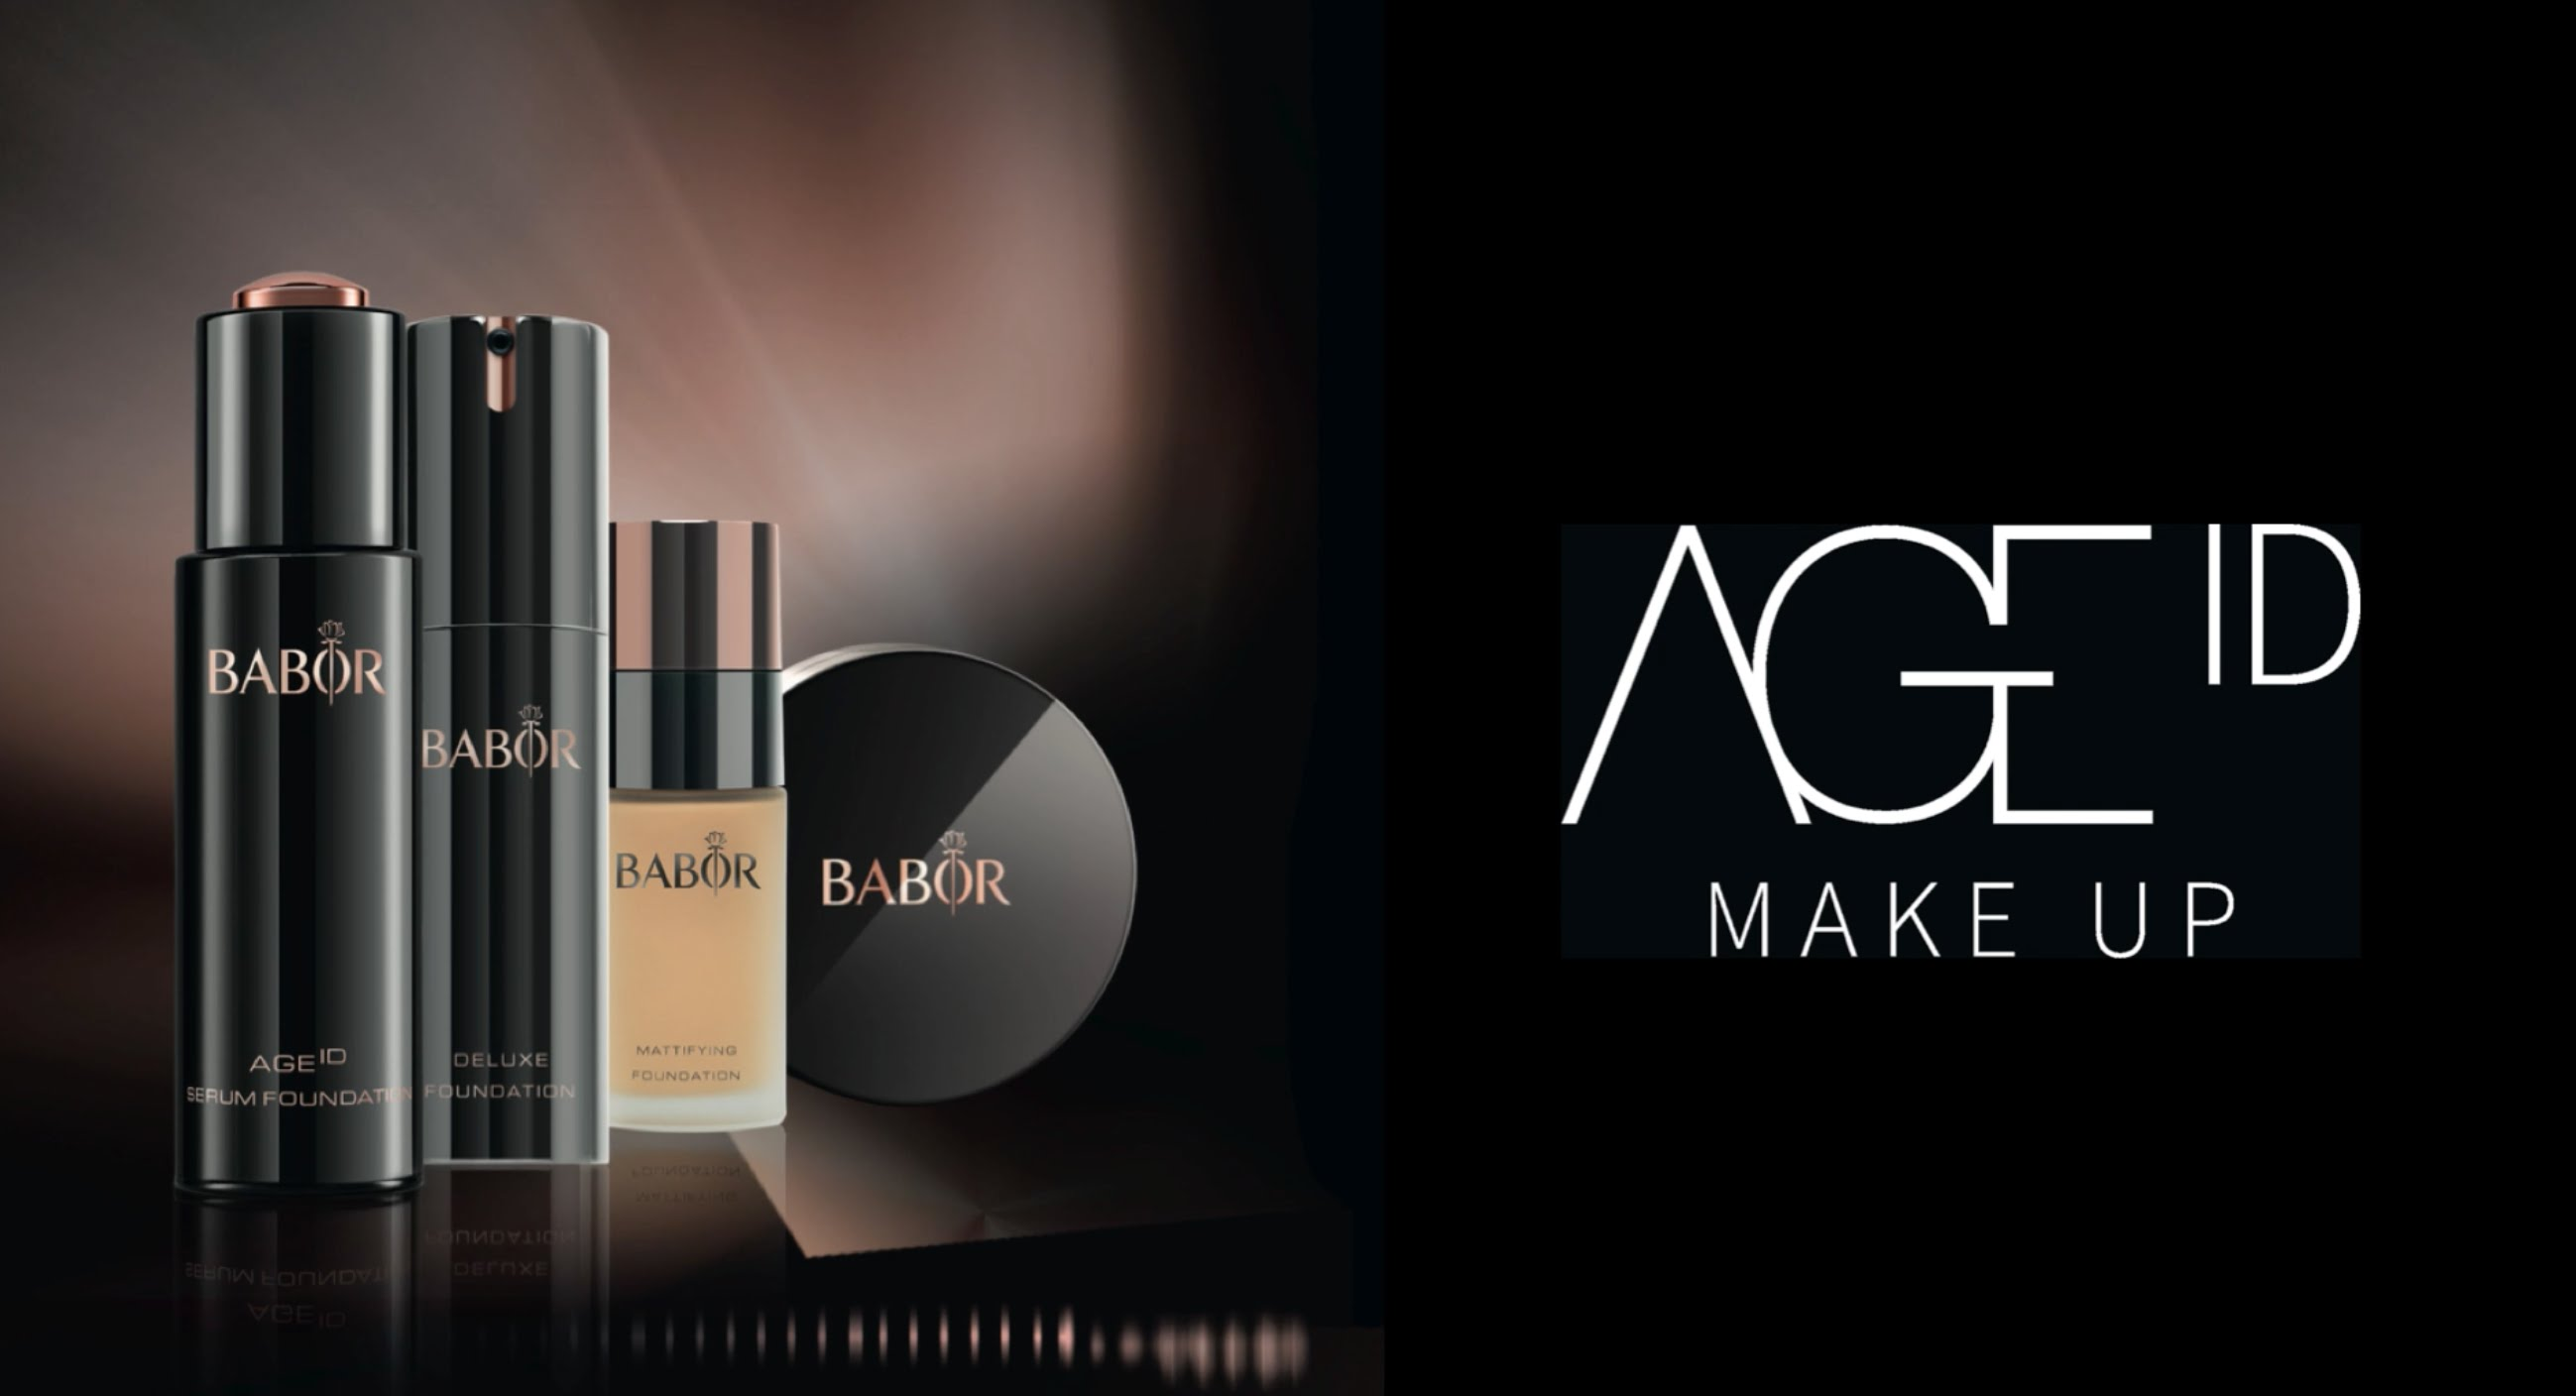 Babor Age Id Makeup My Identity Is